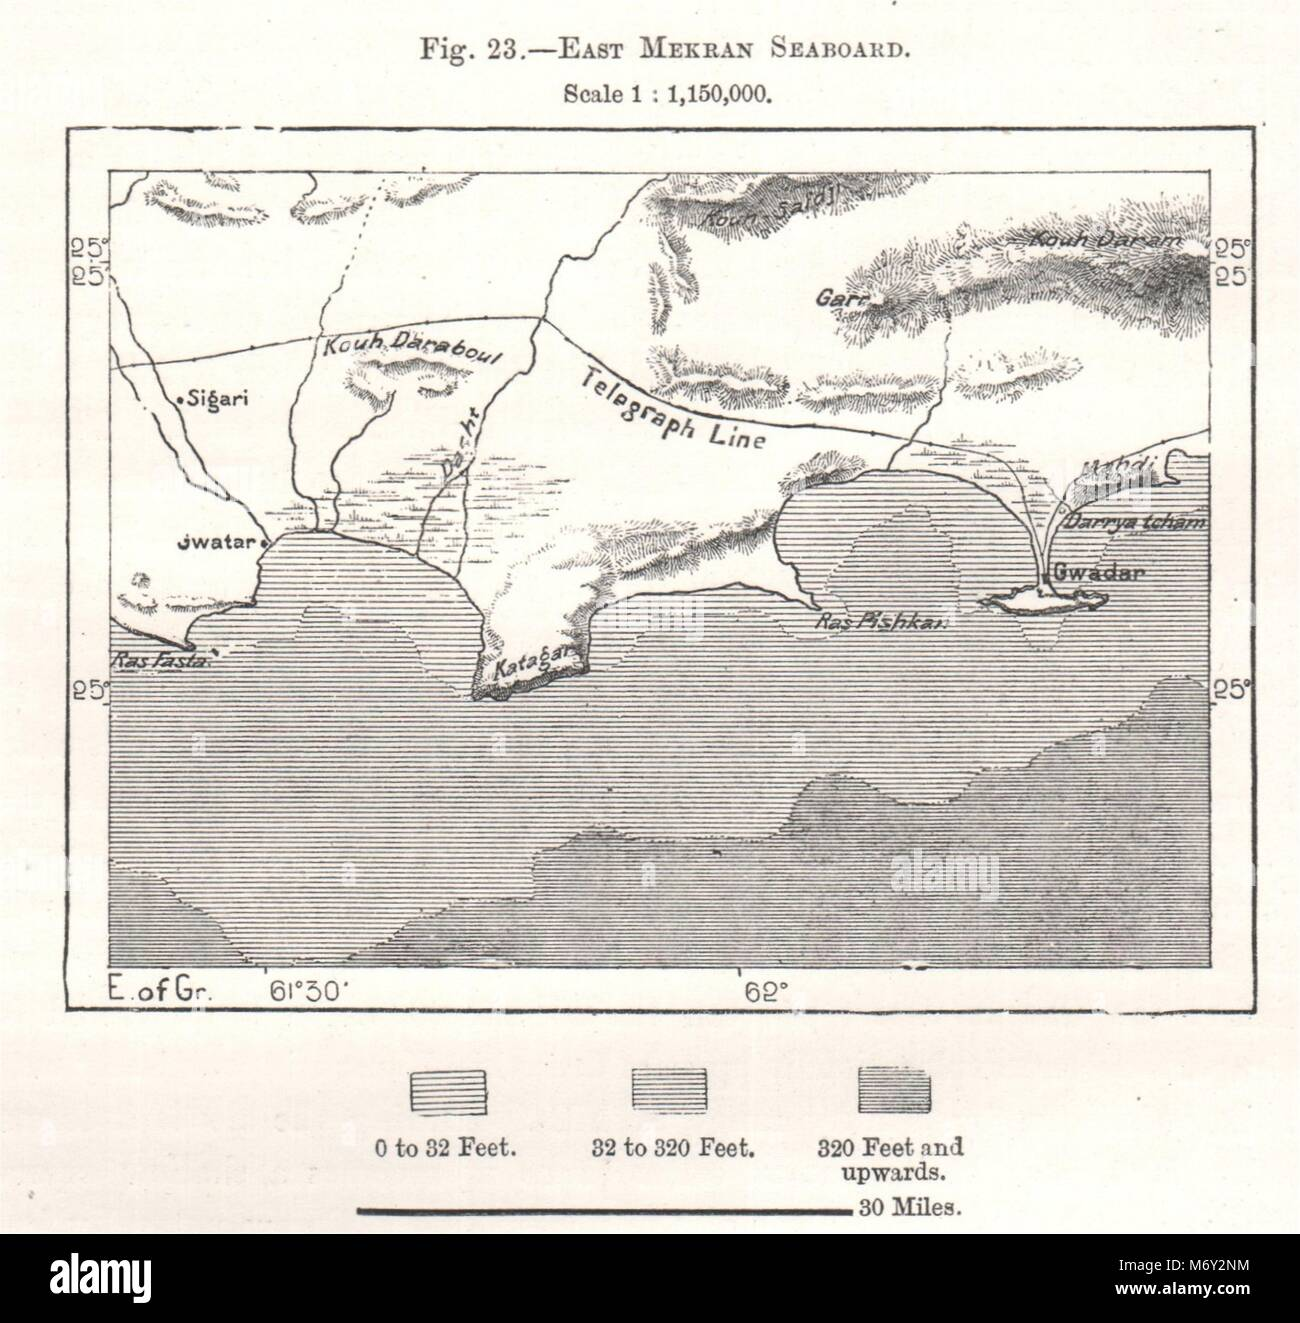 East Makran Seaboard. Gwadar. Pakistan. Sketch map 1885 old antique chart - Stock Image